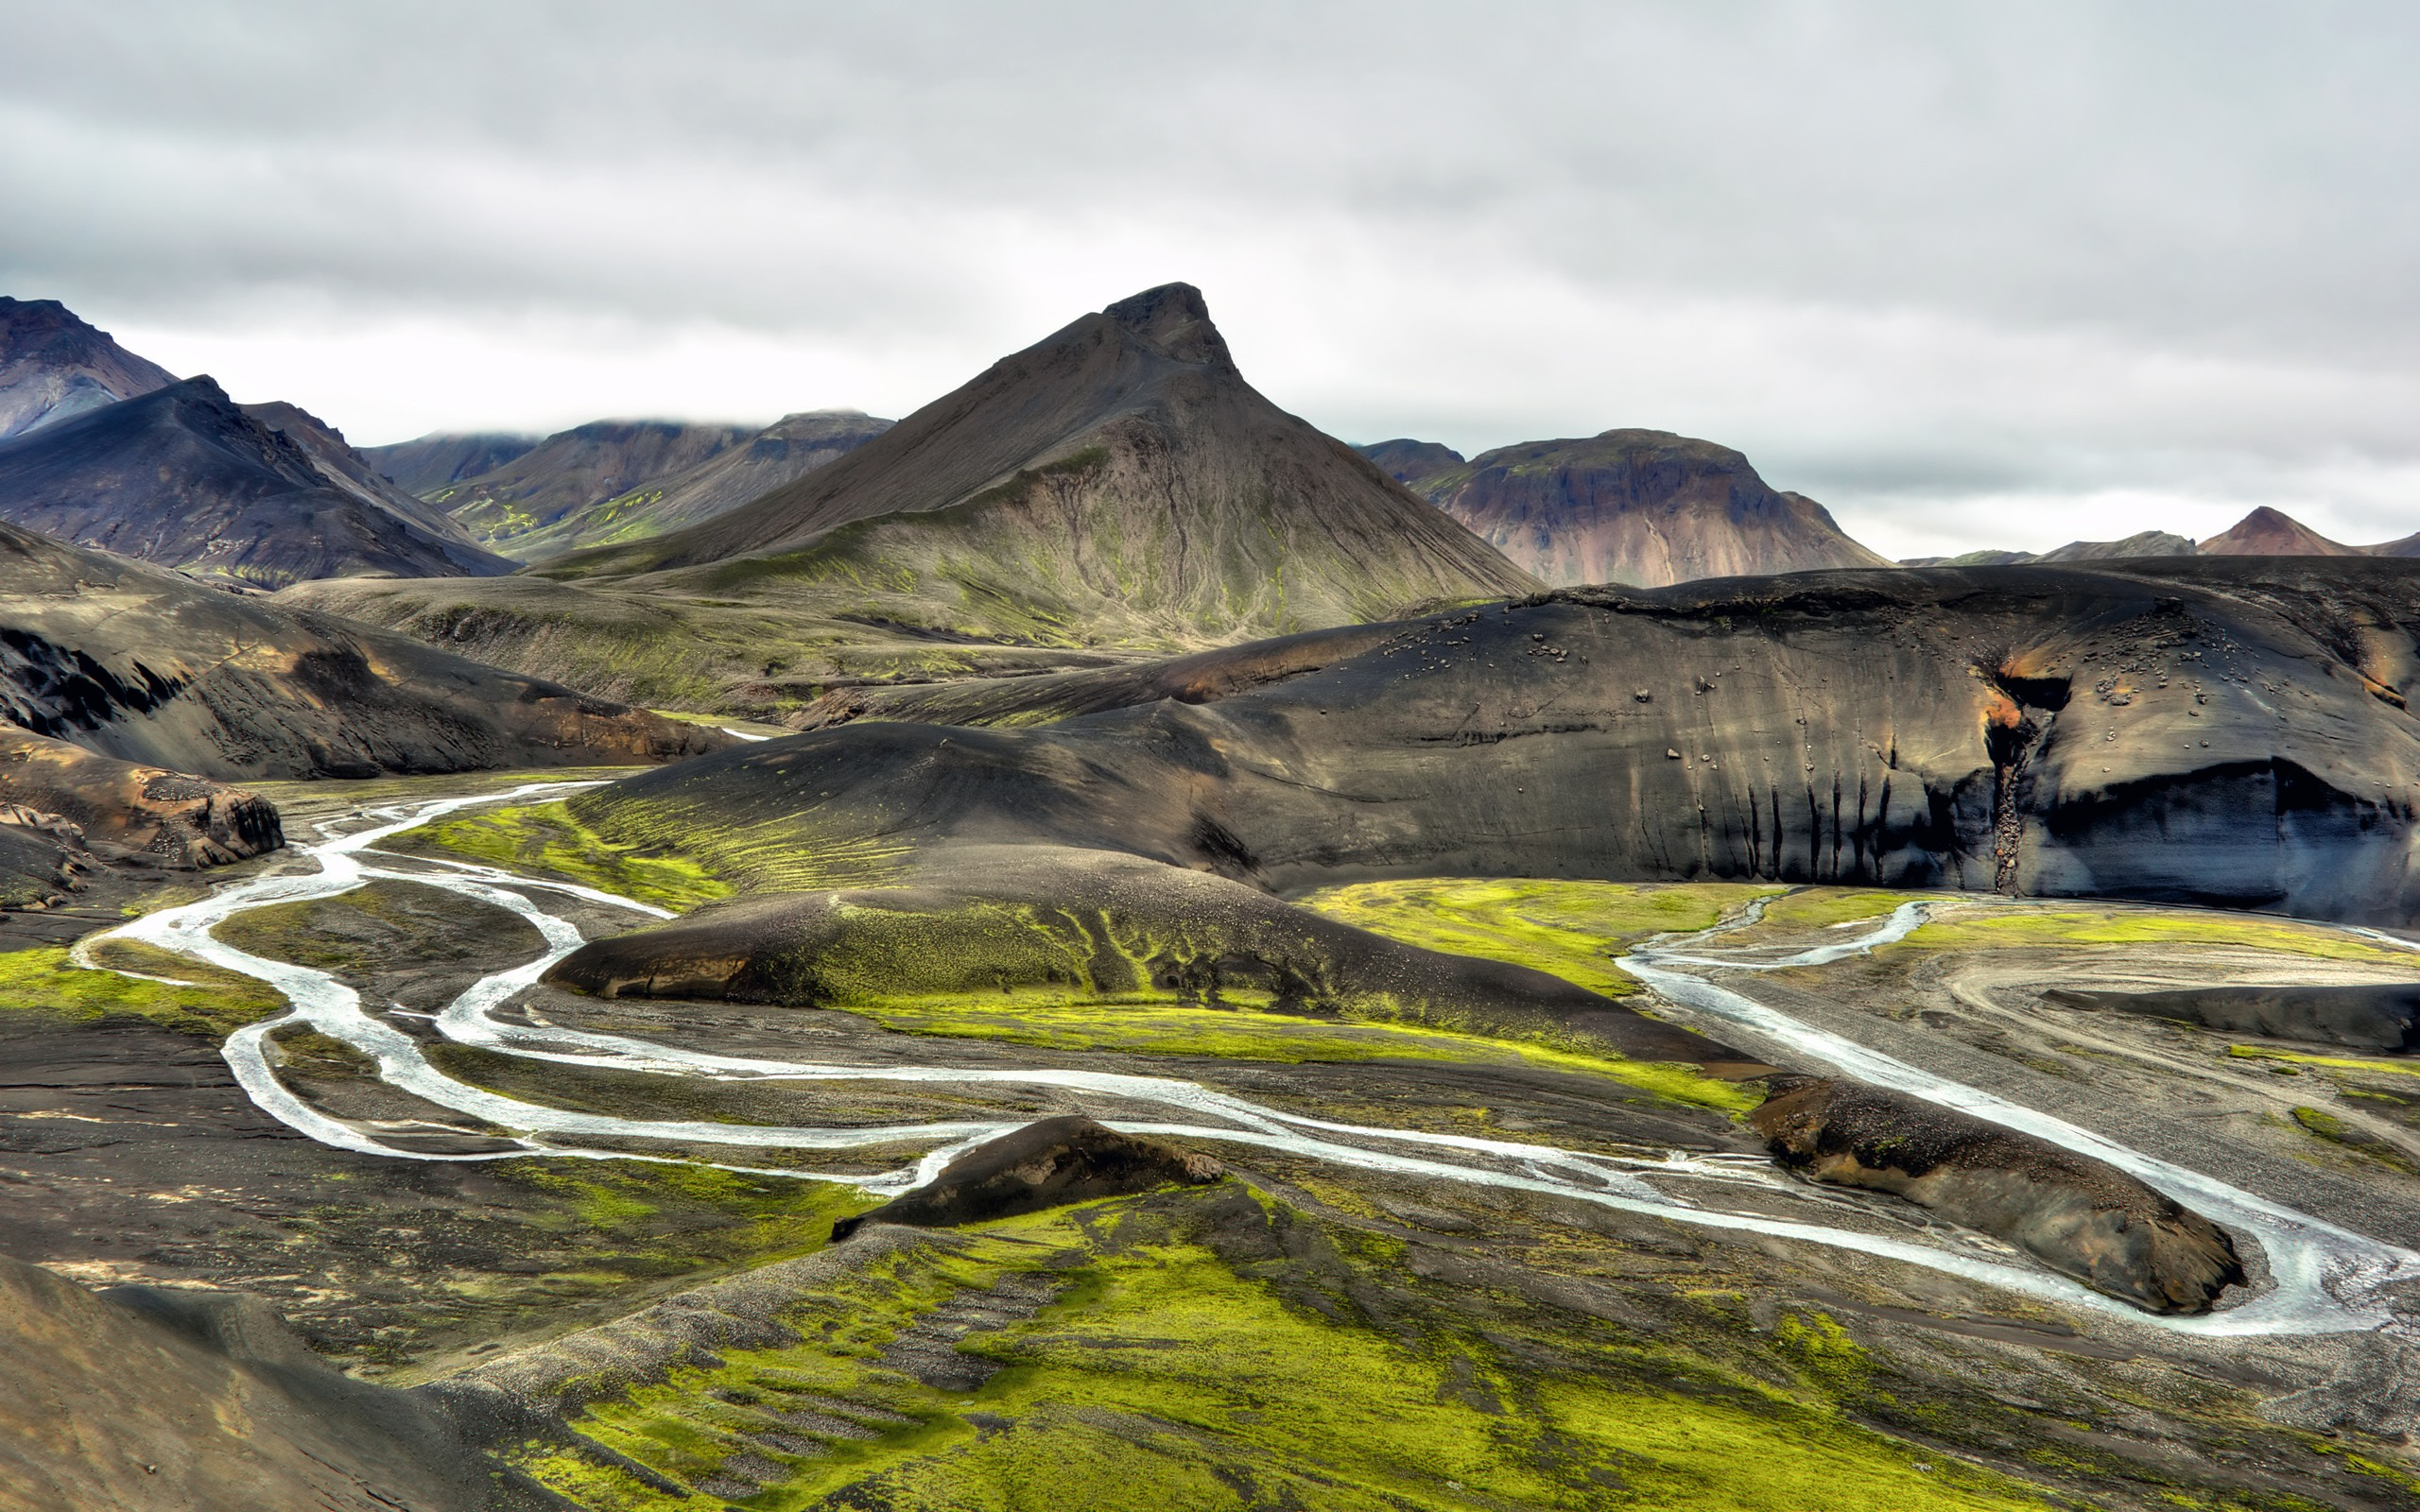 iceland hd wallpapers - photo #31